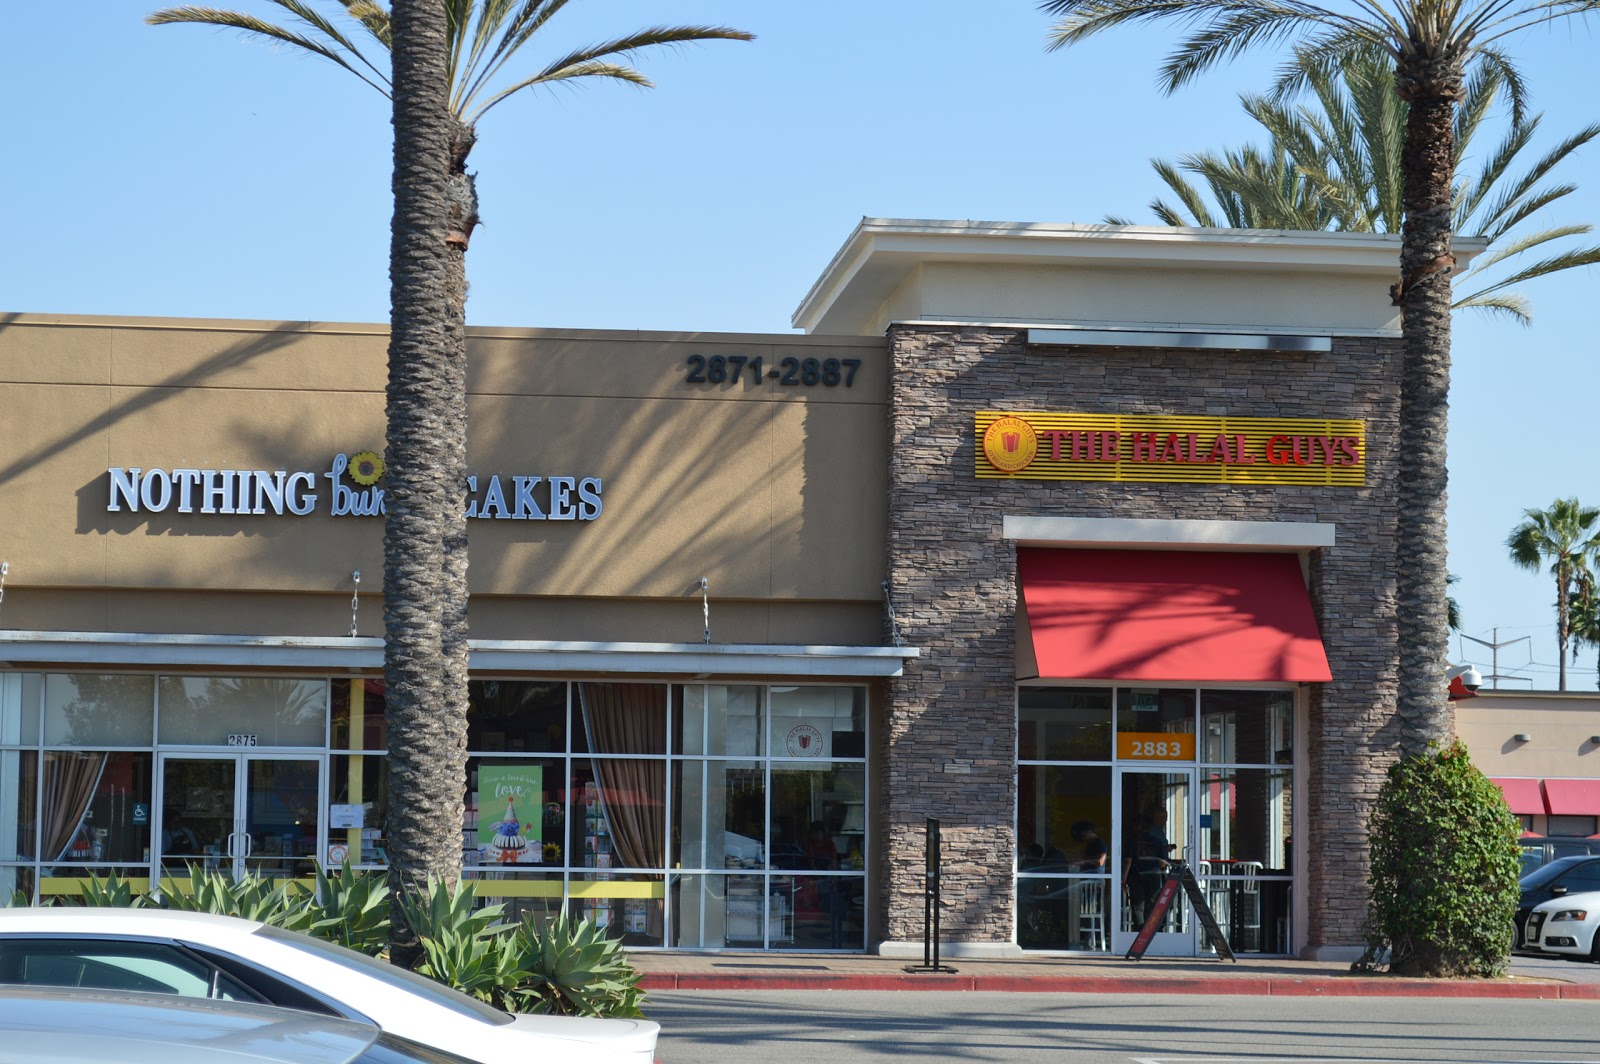 Sept. 30 | Bogo Free Deals and Free Swag From Newest Halal Guys in Tustin